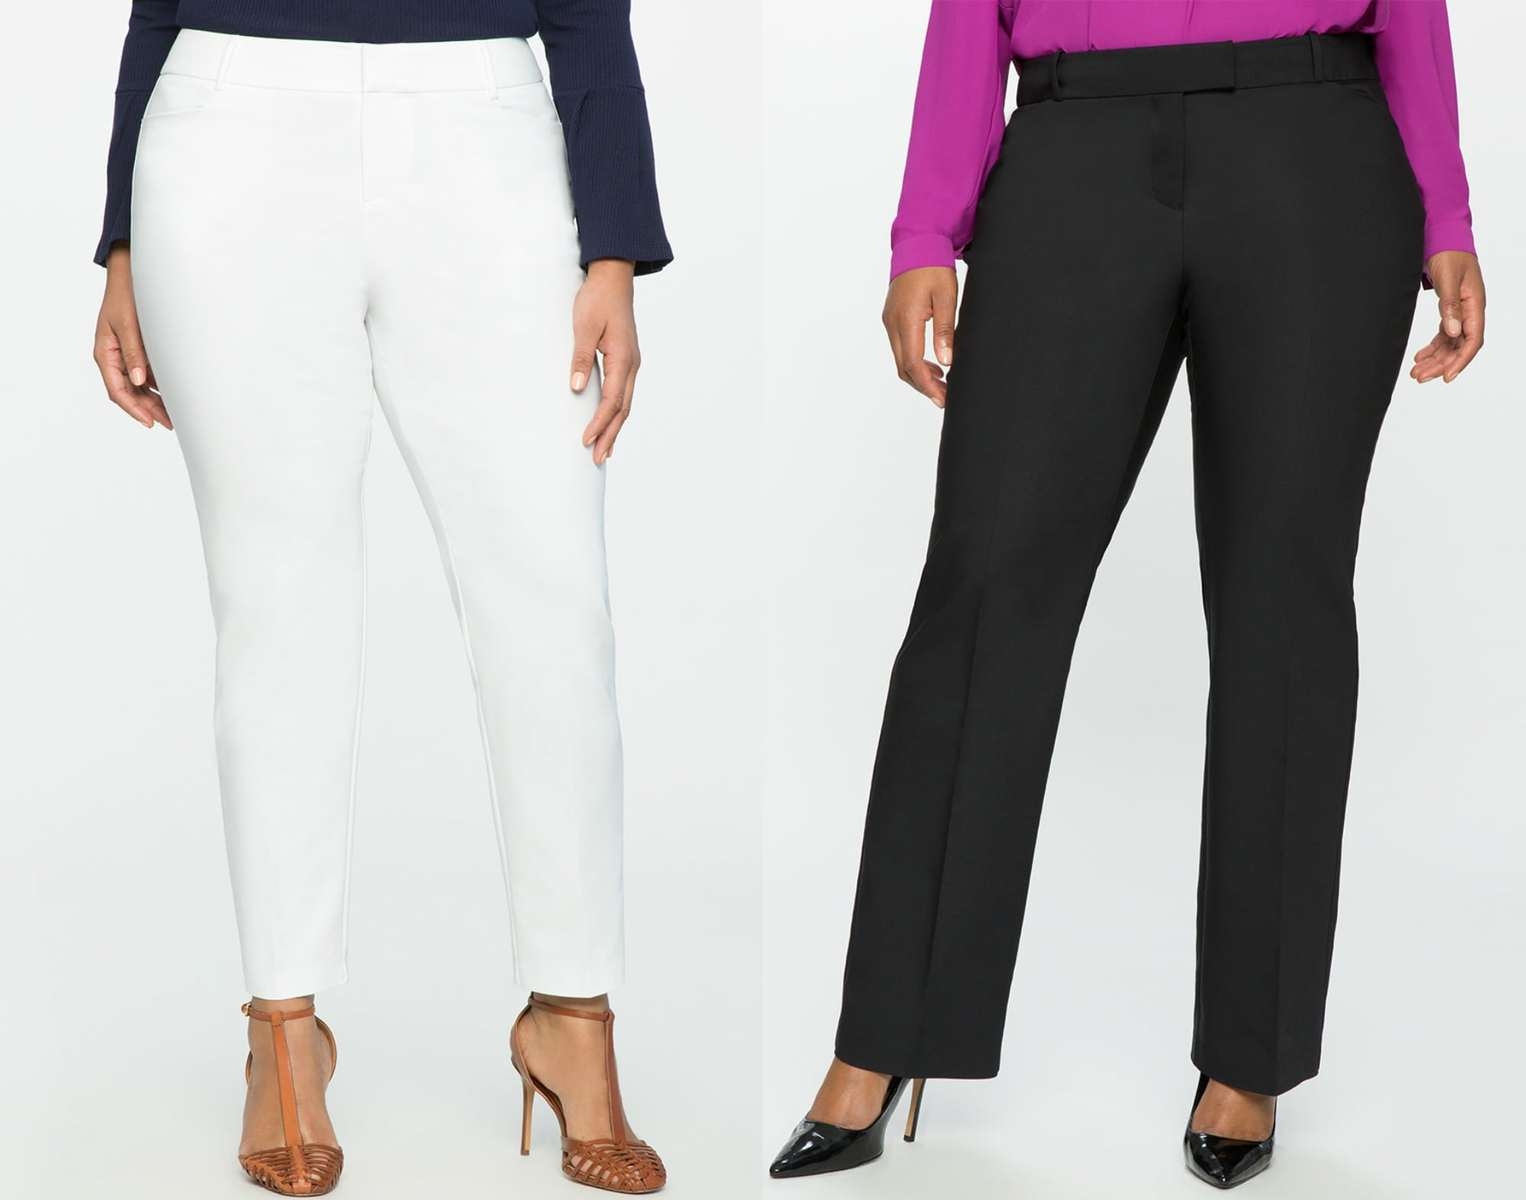 ELOQUII Kady Pant Review for Petites by Wardrobe Oxygen